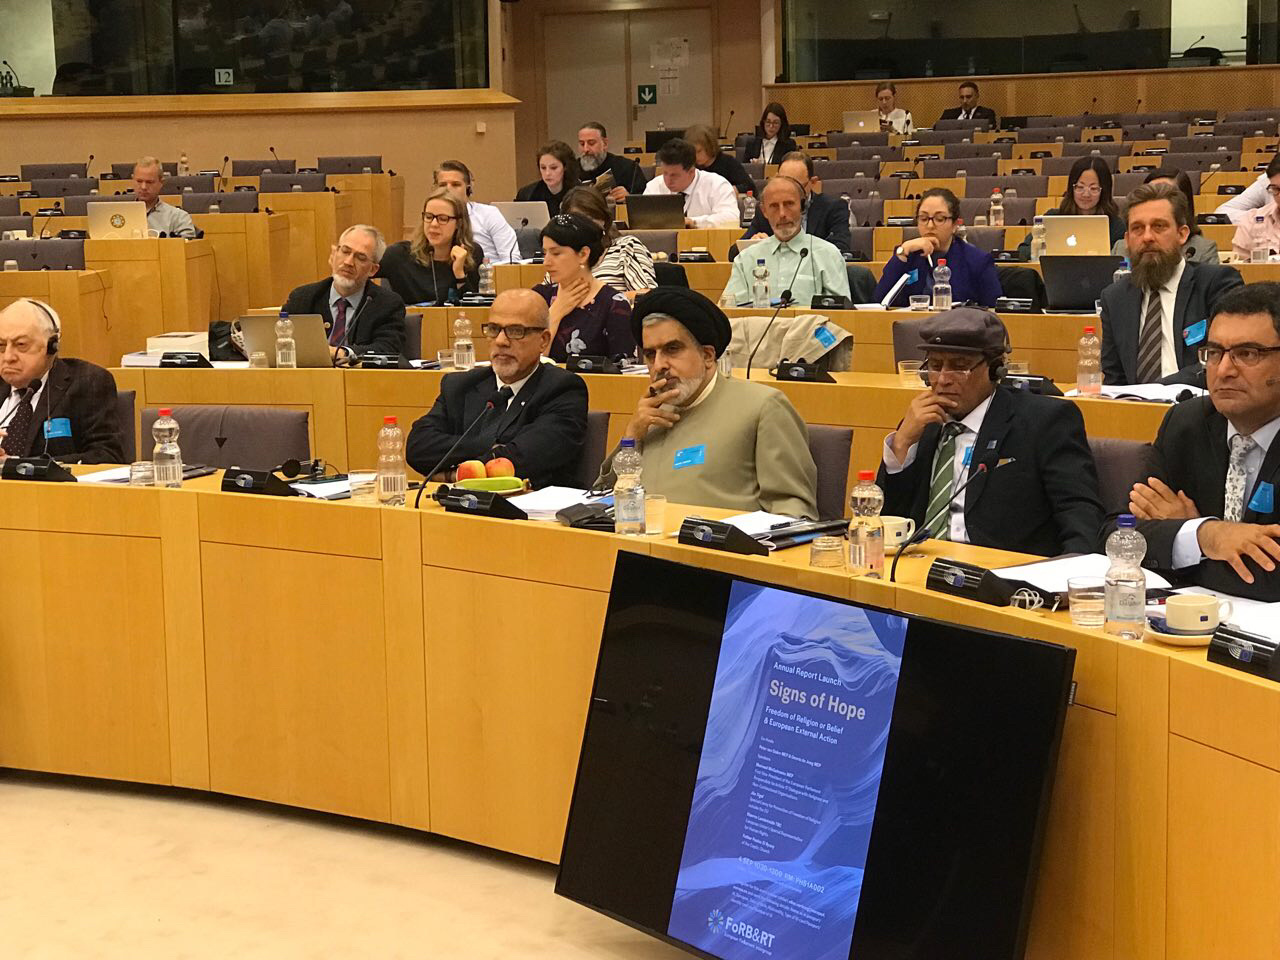 The EU parliant intergroup is an organ focused on the international situation of Freedom of Religion or Belief and Religious Tolerance